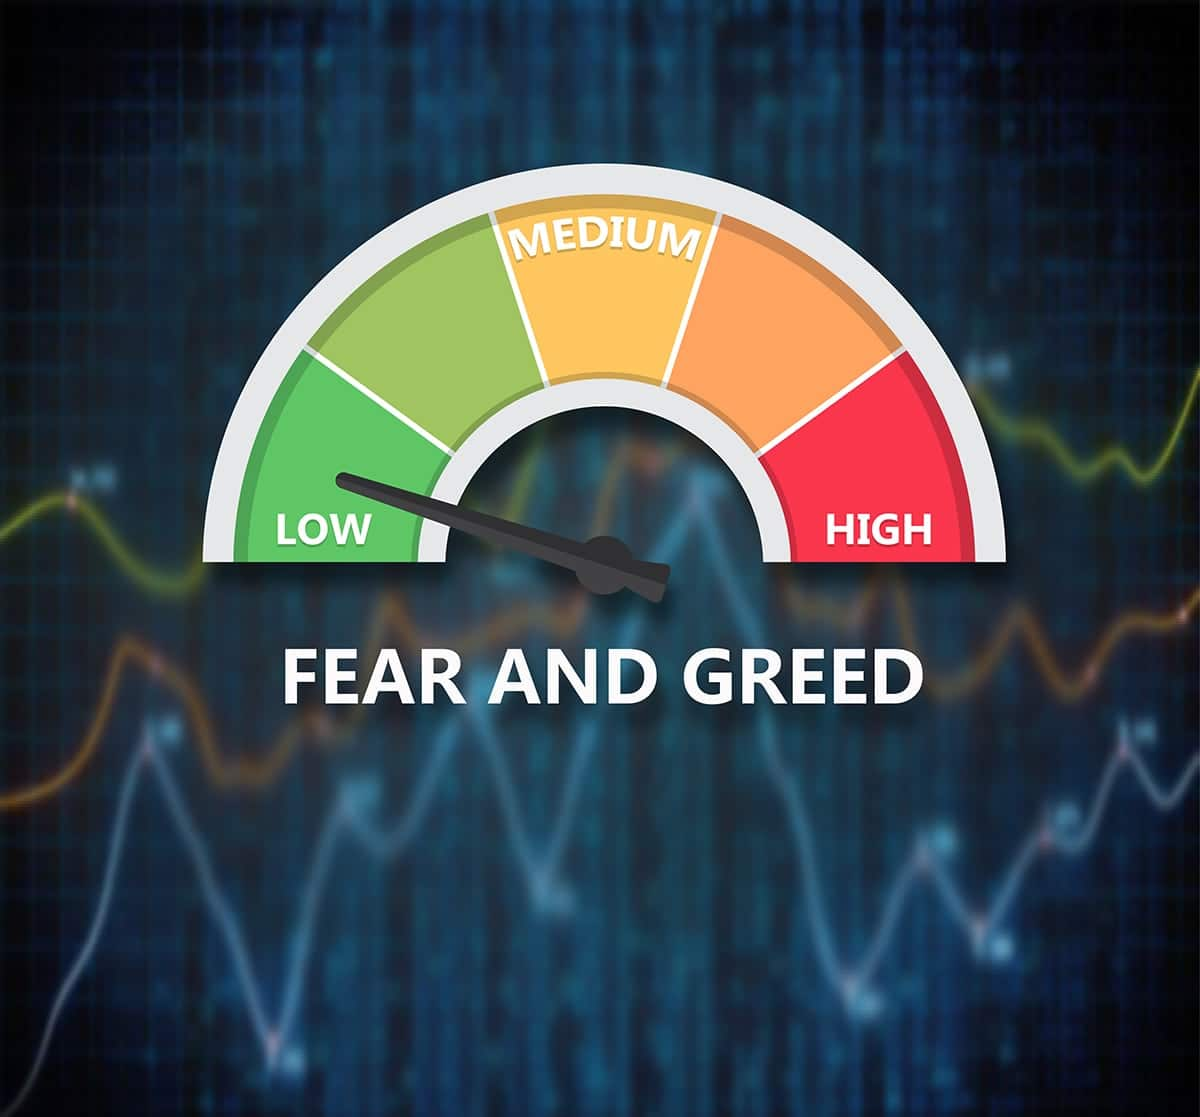 Greed and Fear: dopo i minimi annui l'indice inizia a risalire